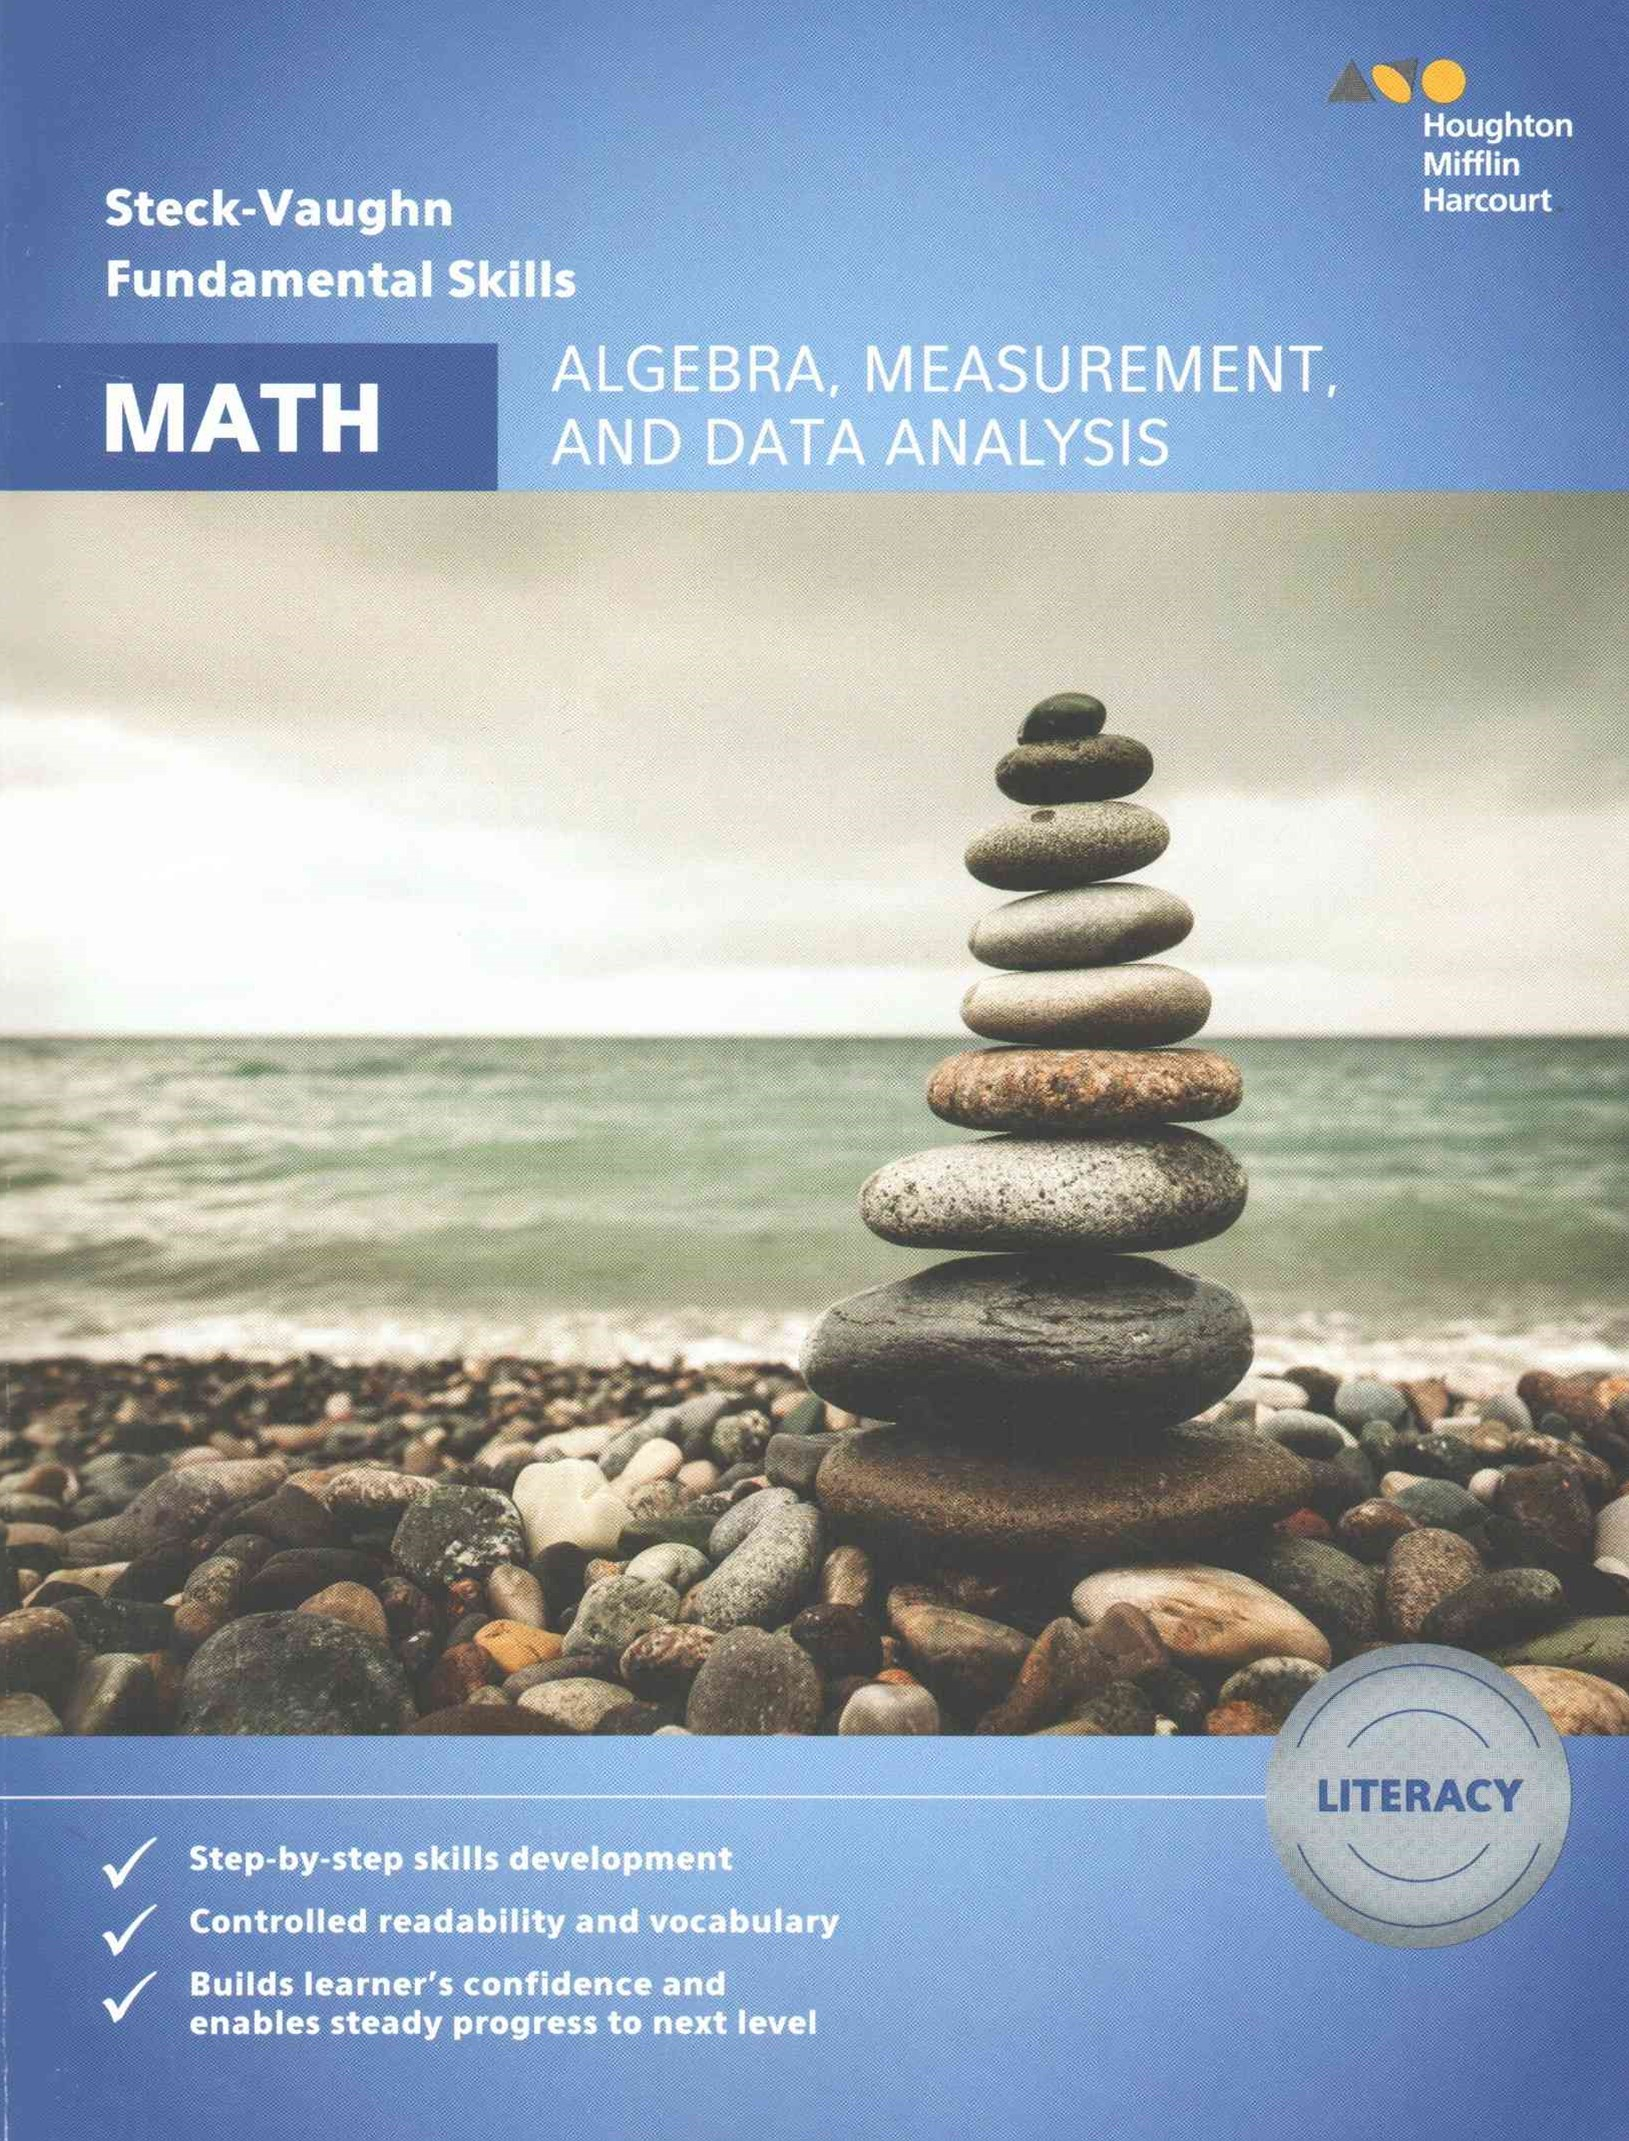 Steck-Vaughn Fundamental Skills for Math